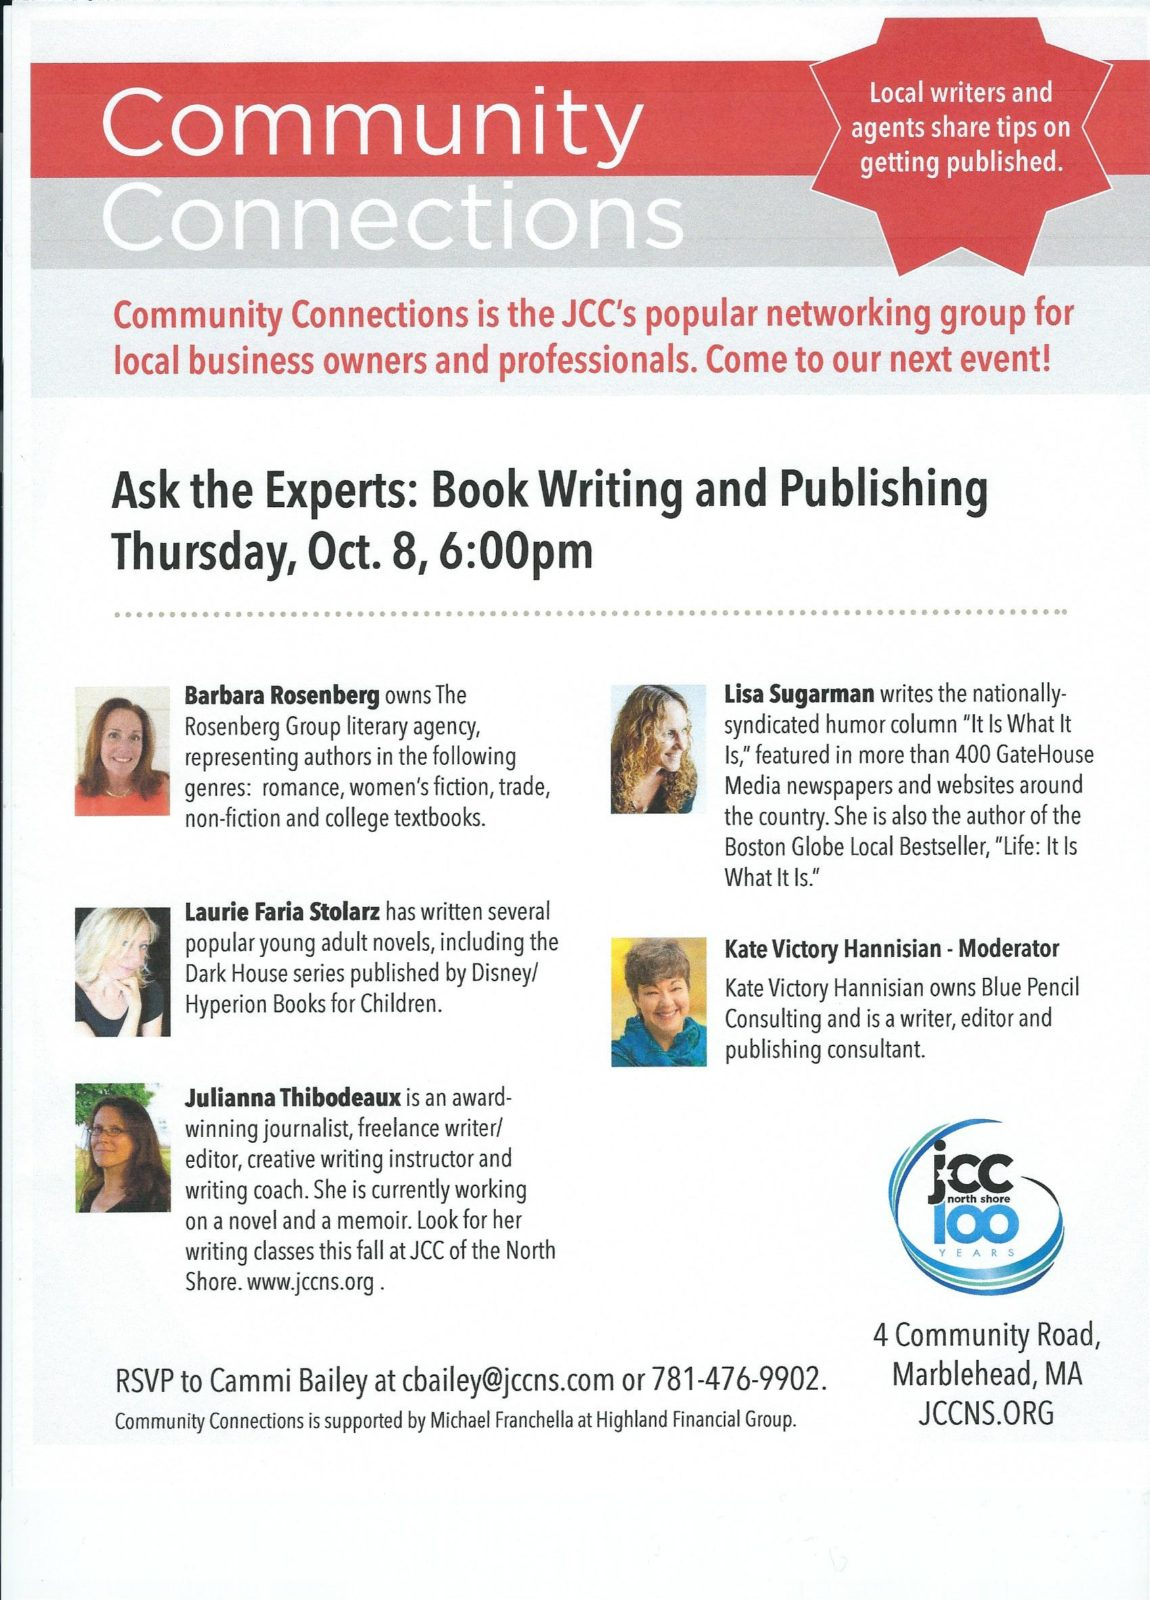 Ask the Experts: Book Writing and Publishing